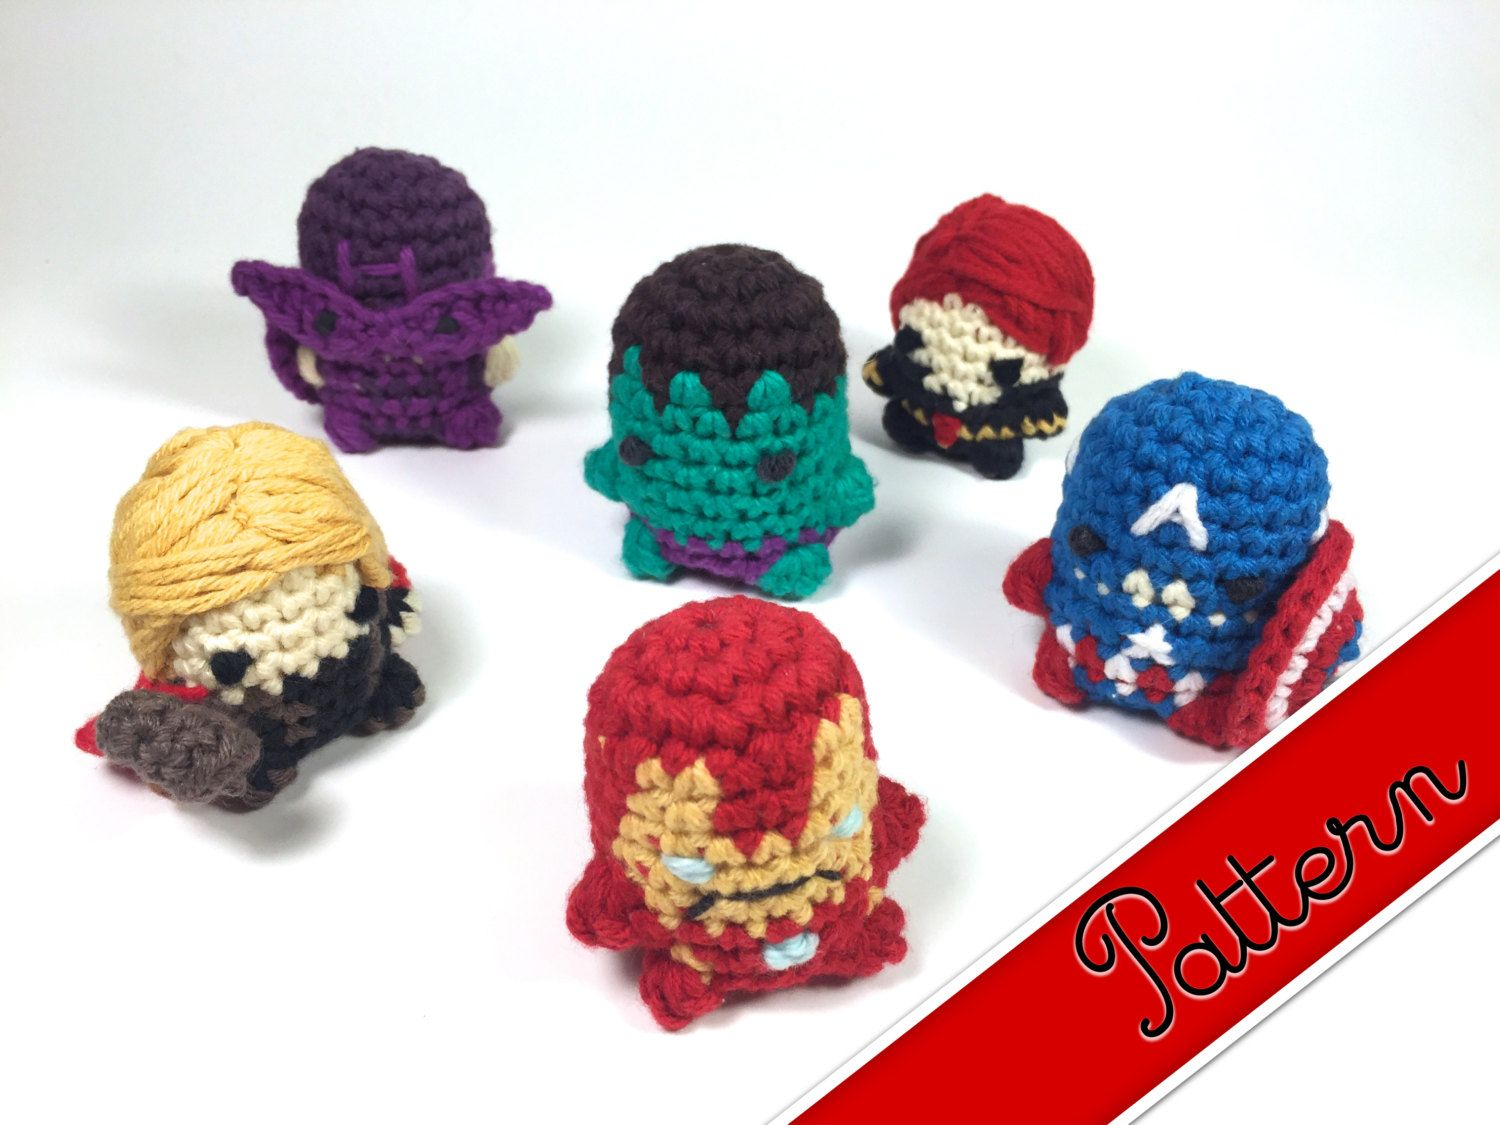 Pdf pattern for crocheted avengers miniature by louiesloops pdf pattern for crocheted avengers miniature by louiesloops bankloansurffo Images